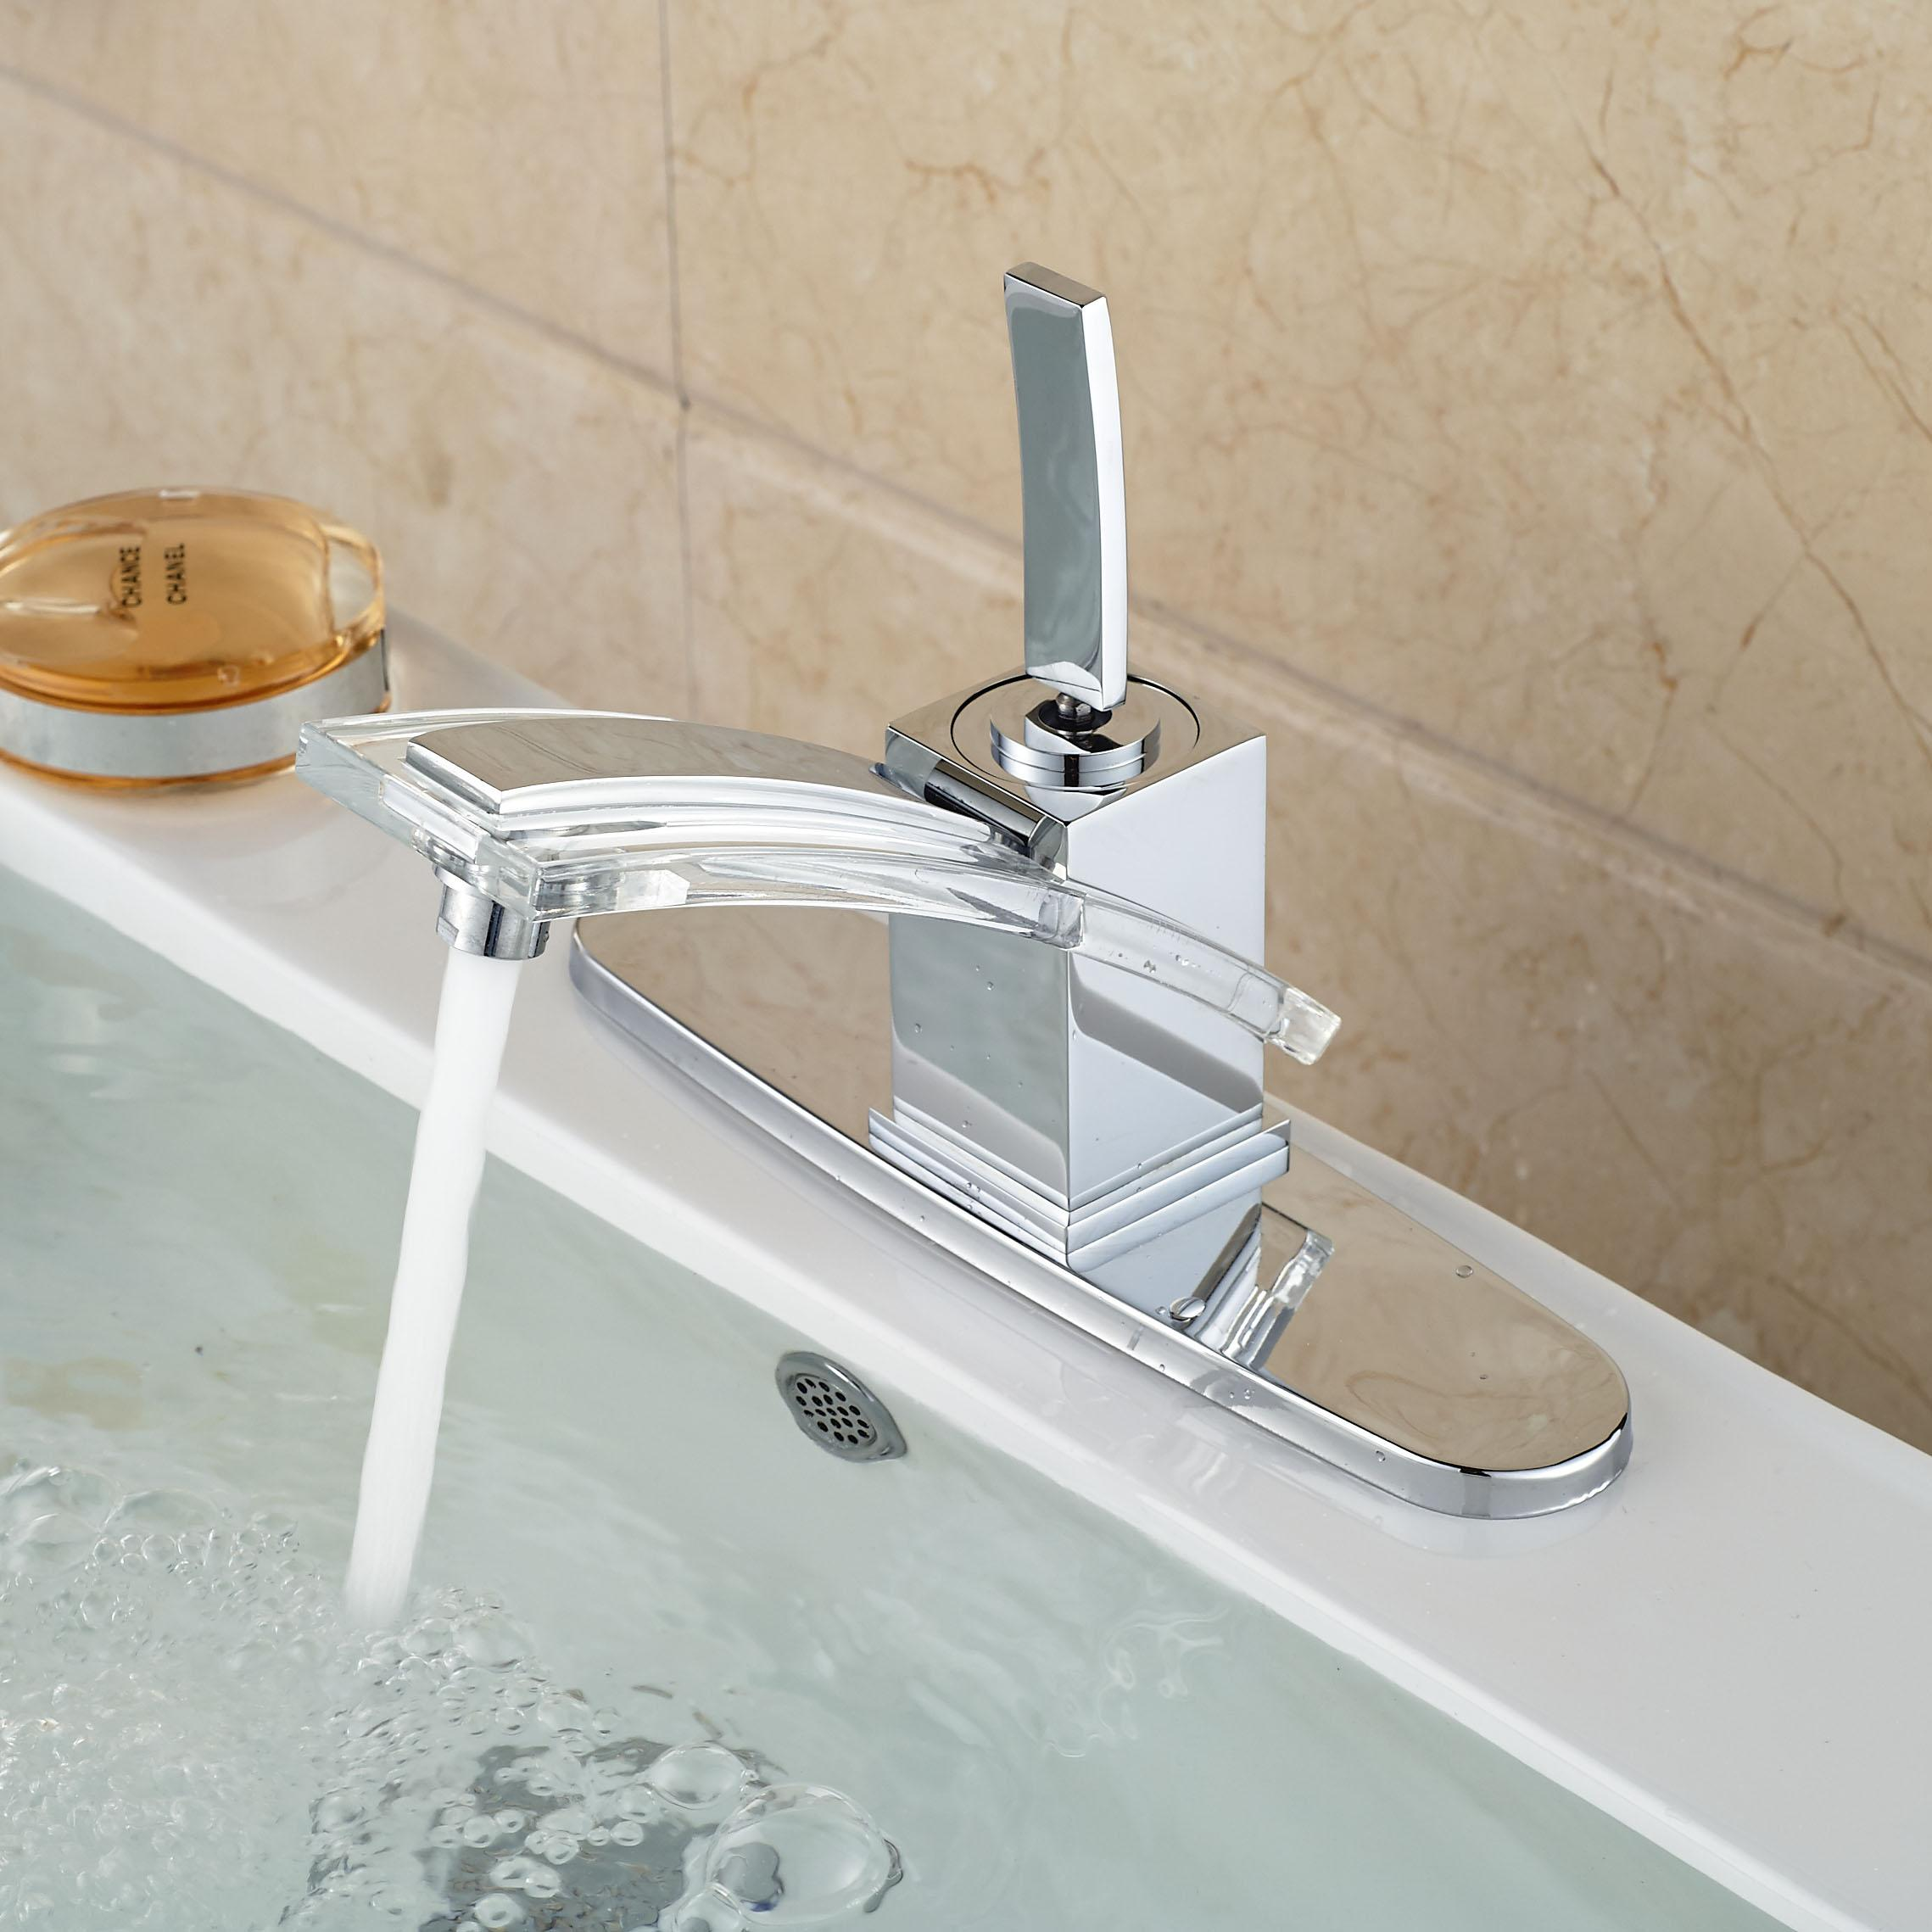 Good Quality Best Price Bathroom Basin Sink Mixer Taps with 8 Hole ...